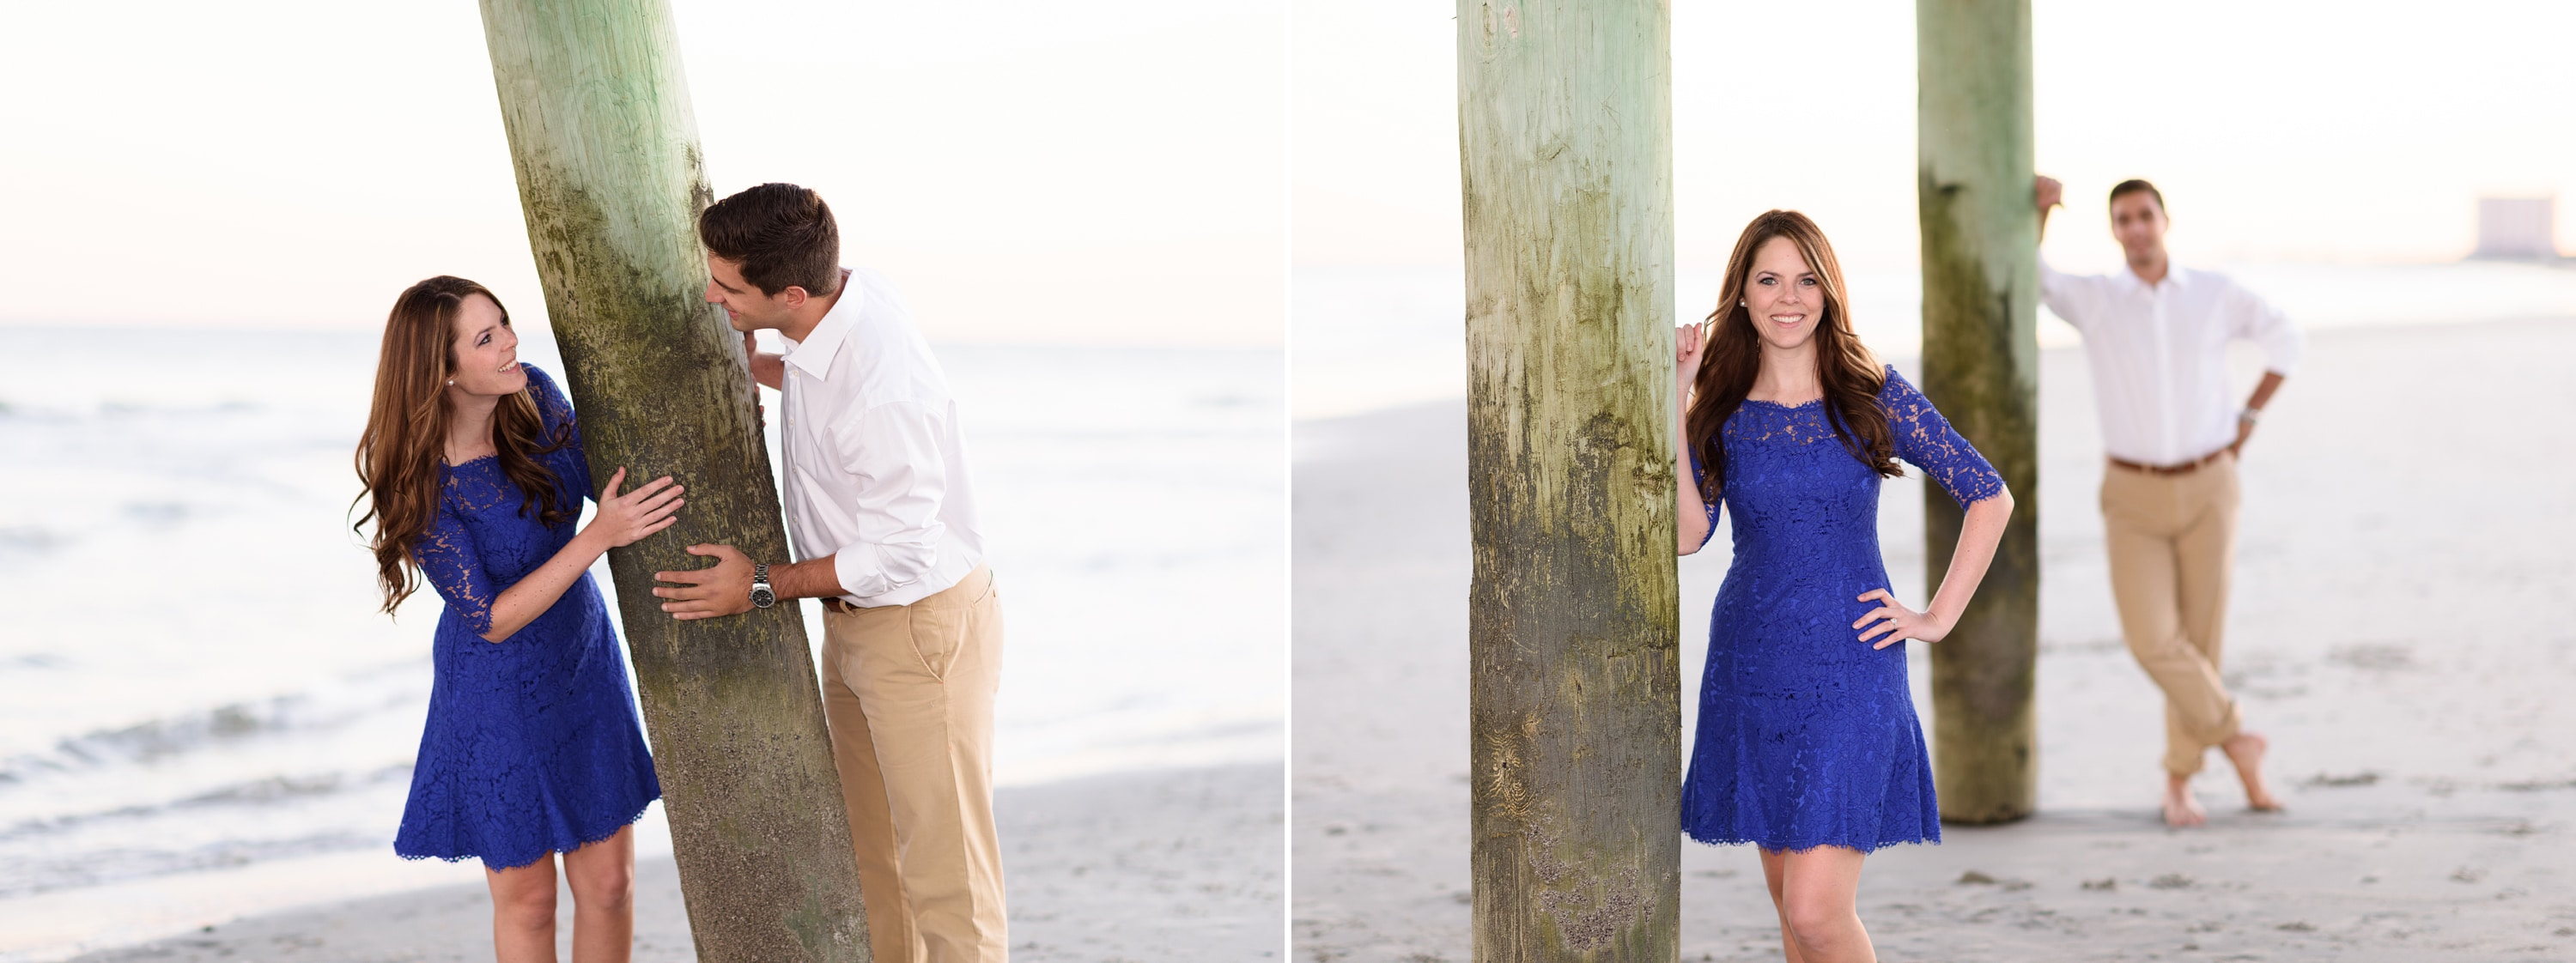 Engagement at Myrtle Beach State Park after flooding